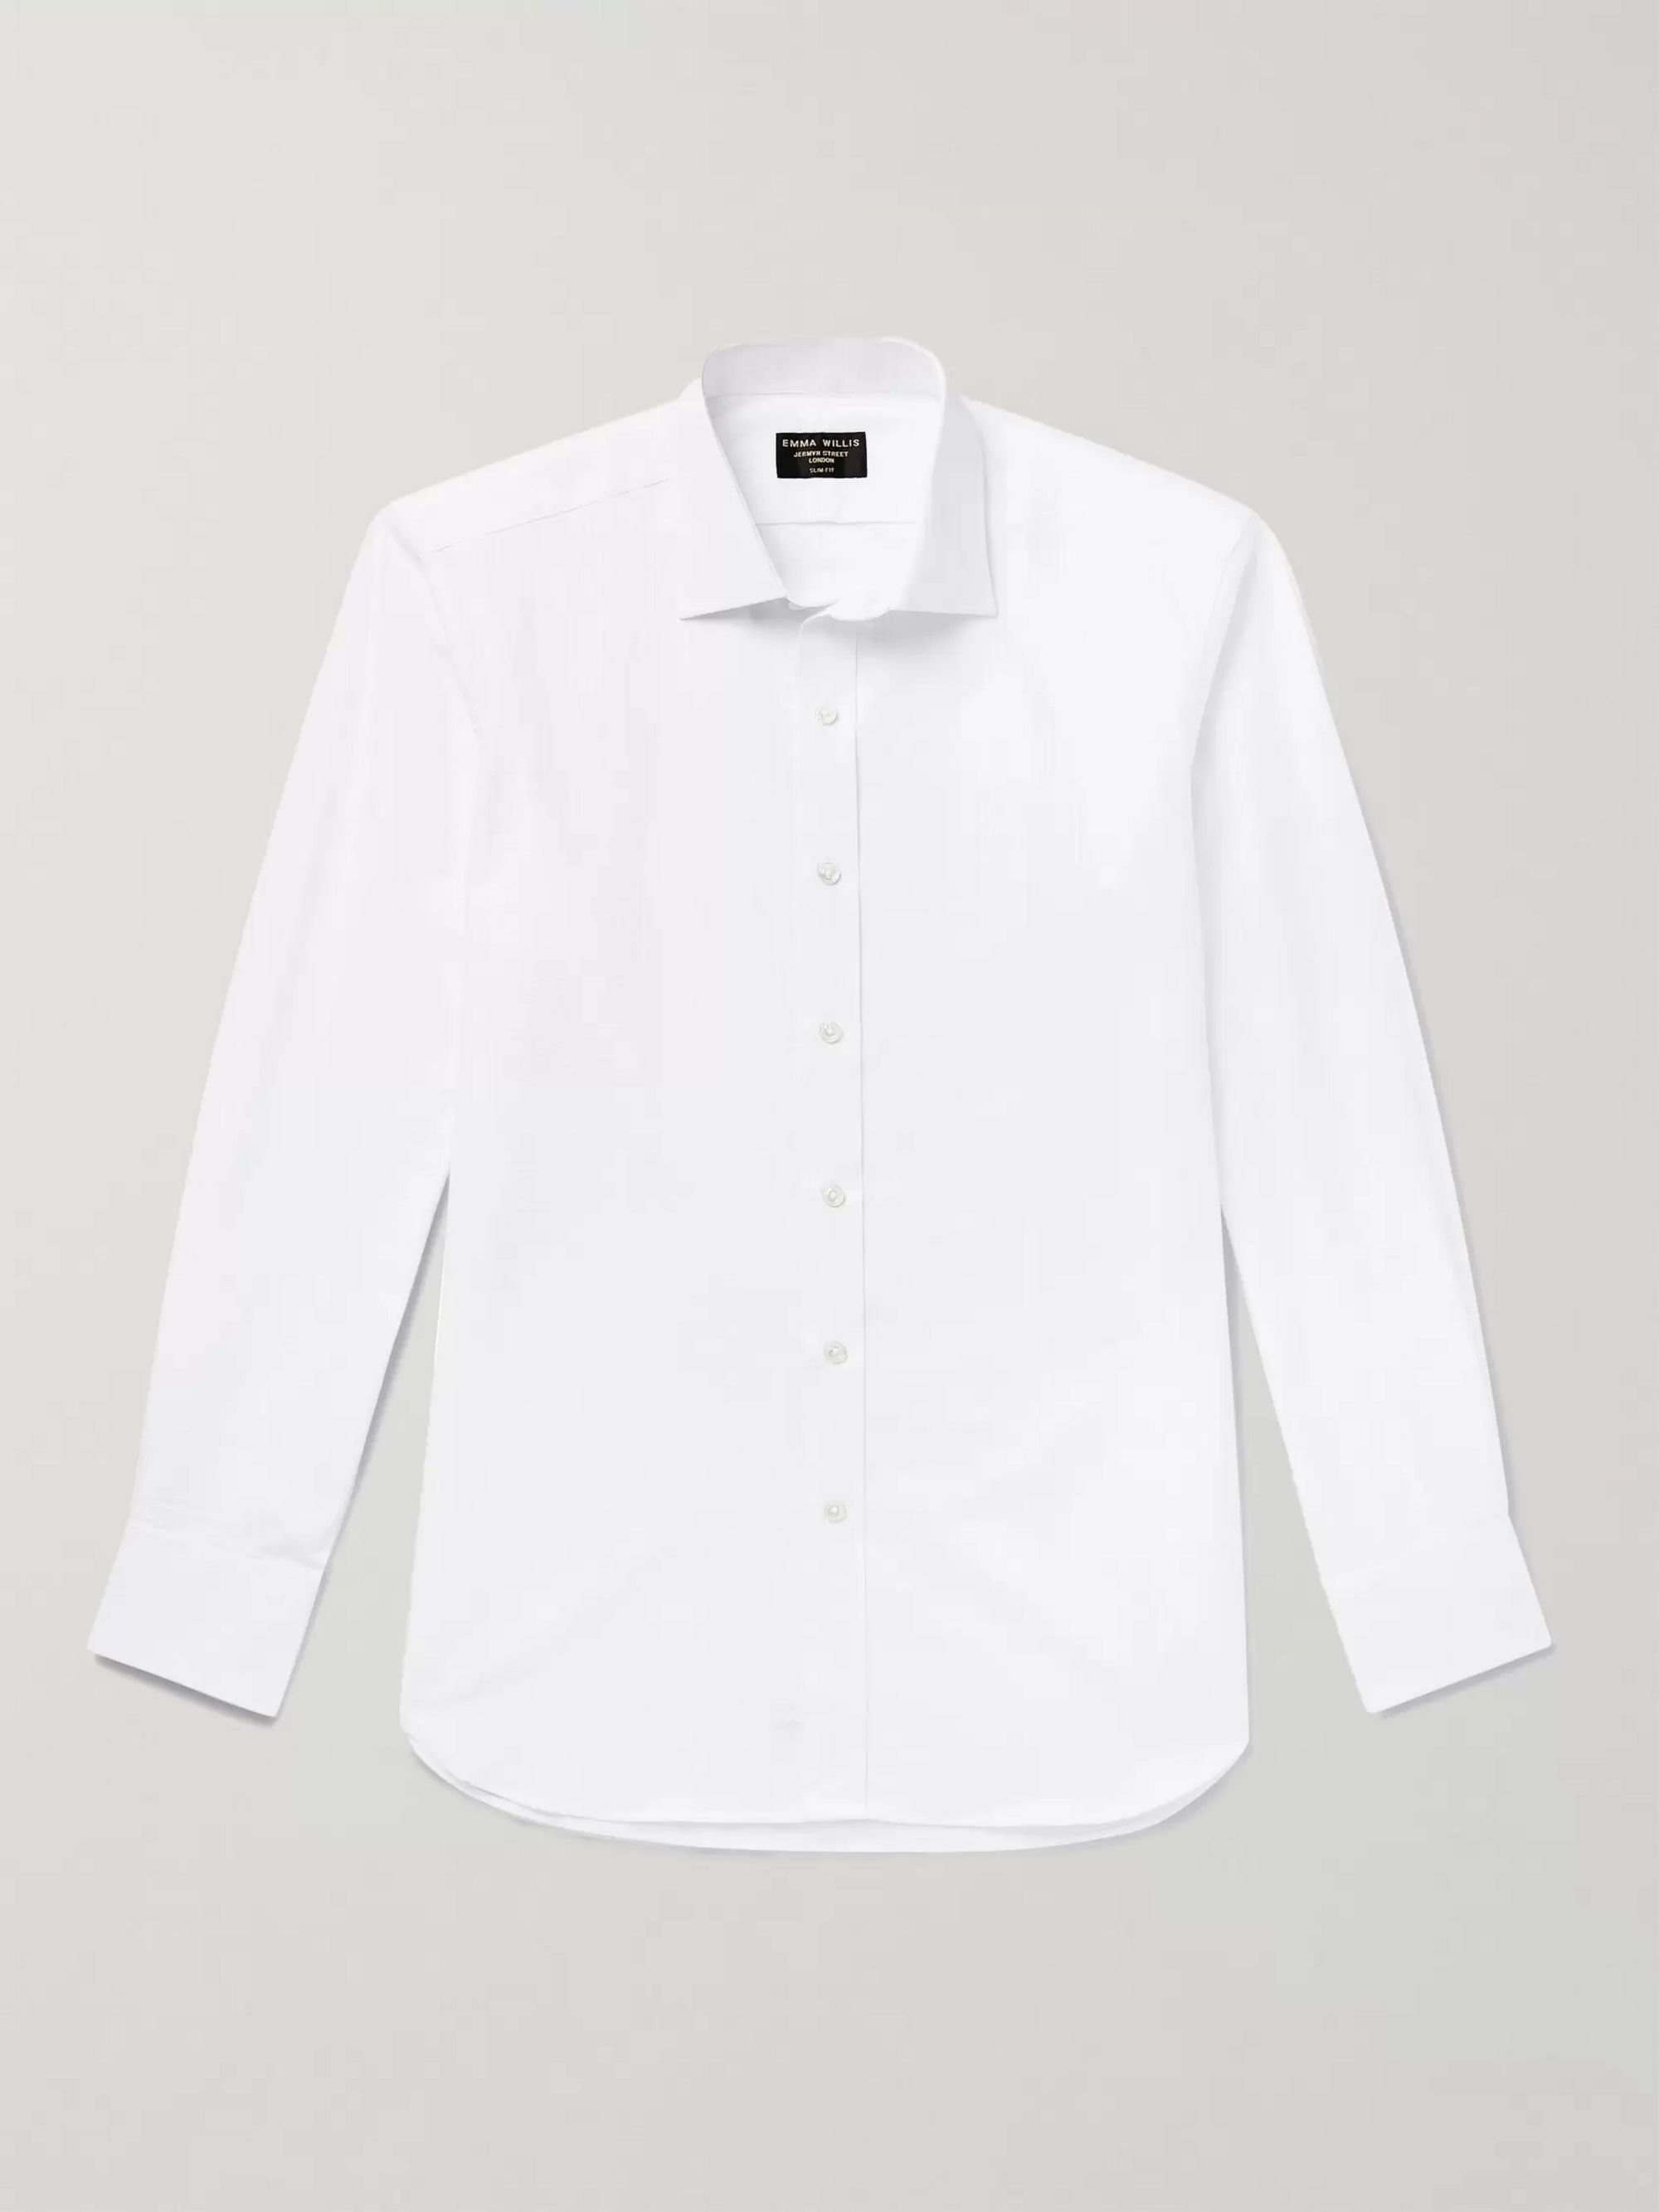 Emma Willis Cotton-Seersucker Shirt